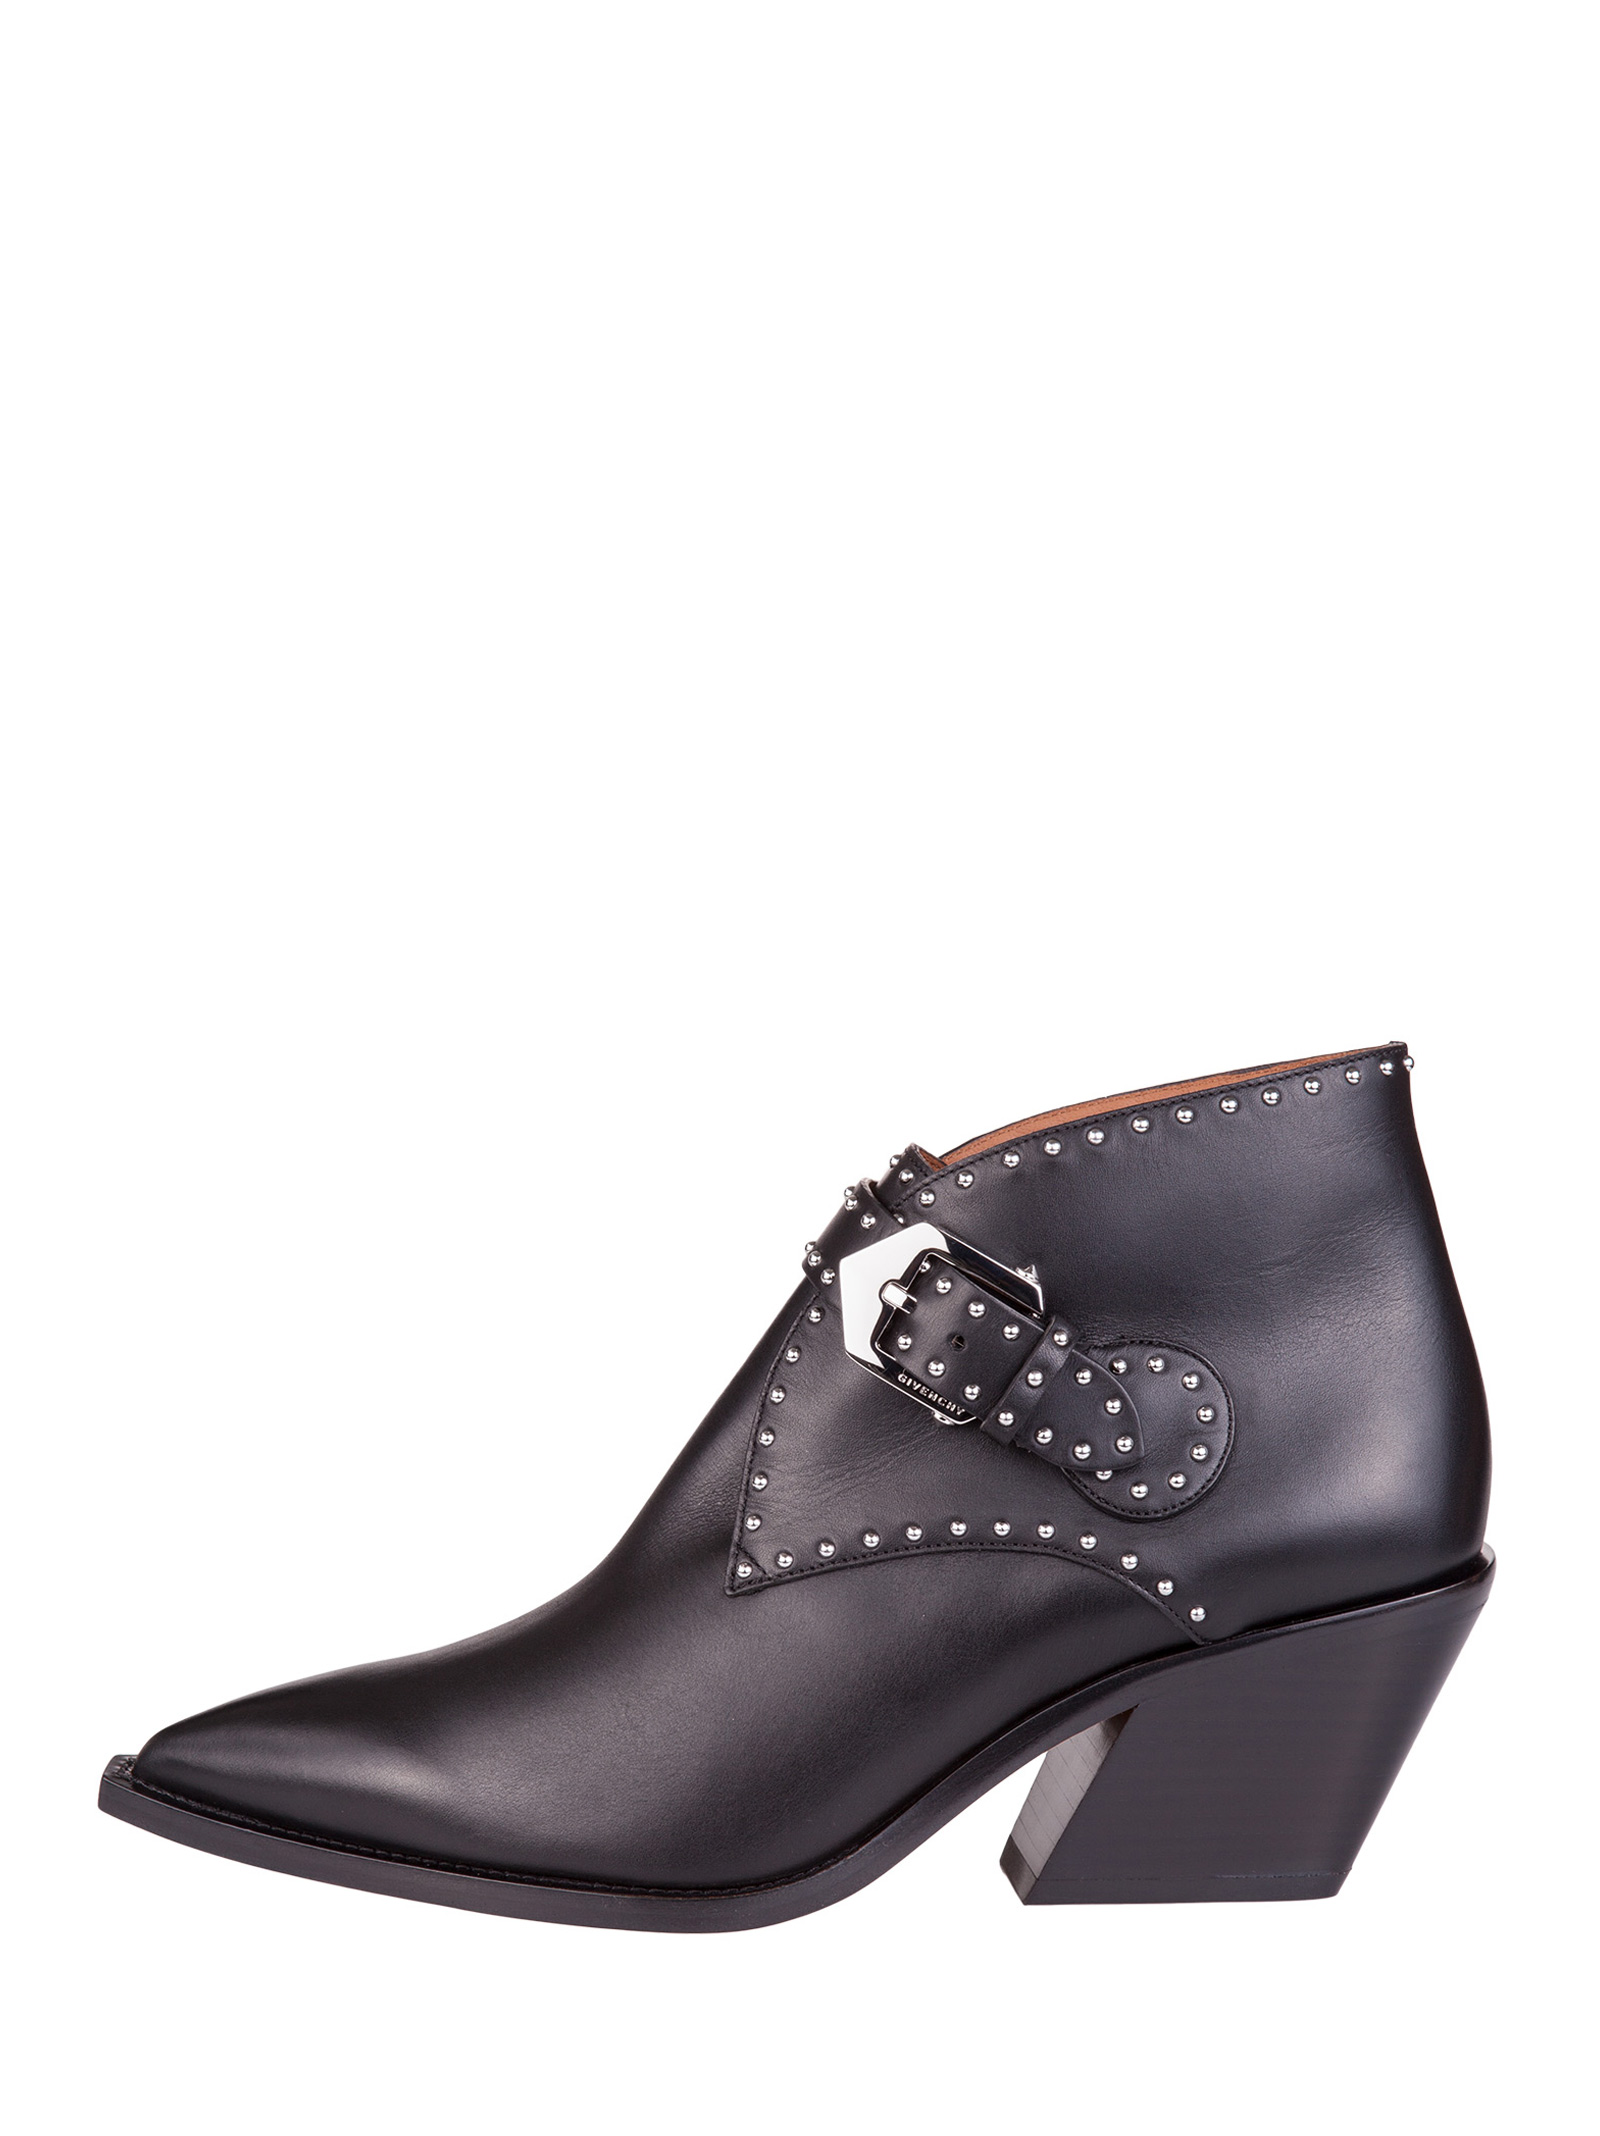 28d76a6ac Michele Franzese Moda. 0. Givenchy boots Givenchy